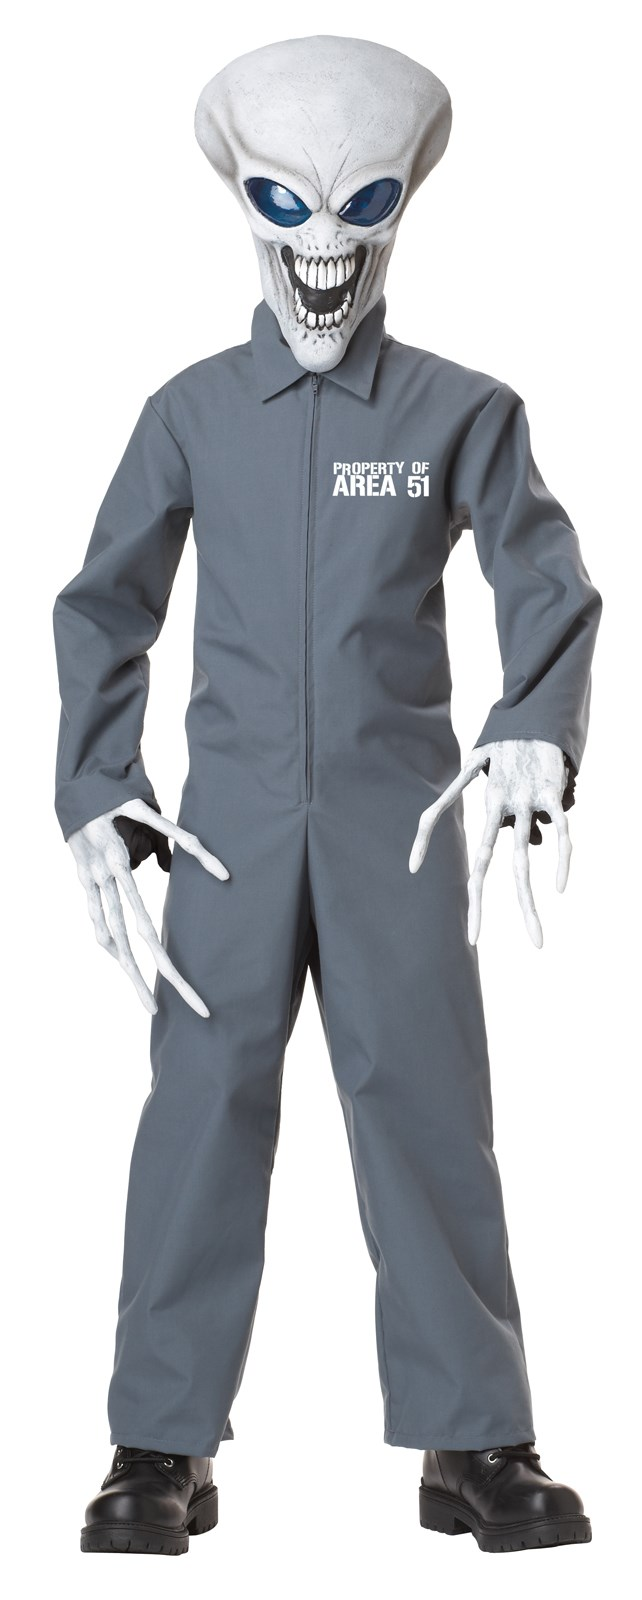 Image of Property of Area 51 Child Costume